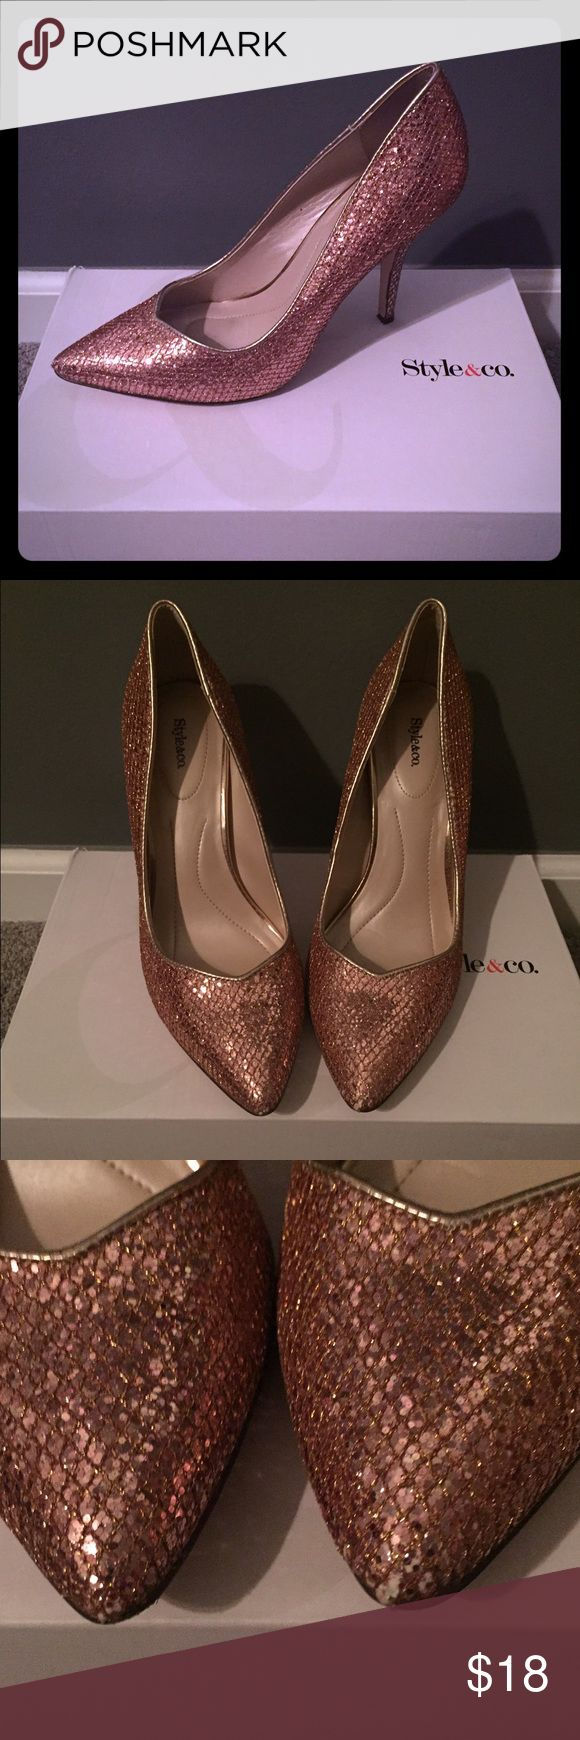 Rise Gold Pumps These pumps have been worn one time to a wedding. They are in great condition with a little scuff on the tip of the toe (see pic 3) Style & Co Shoes Heels